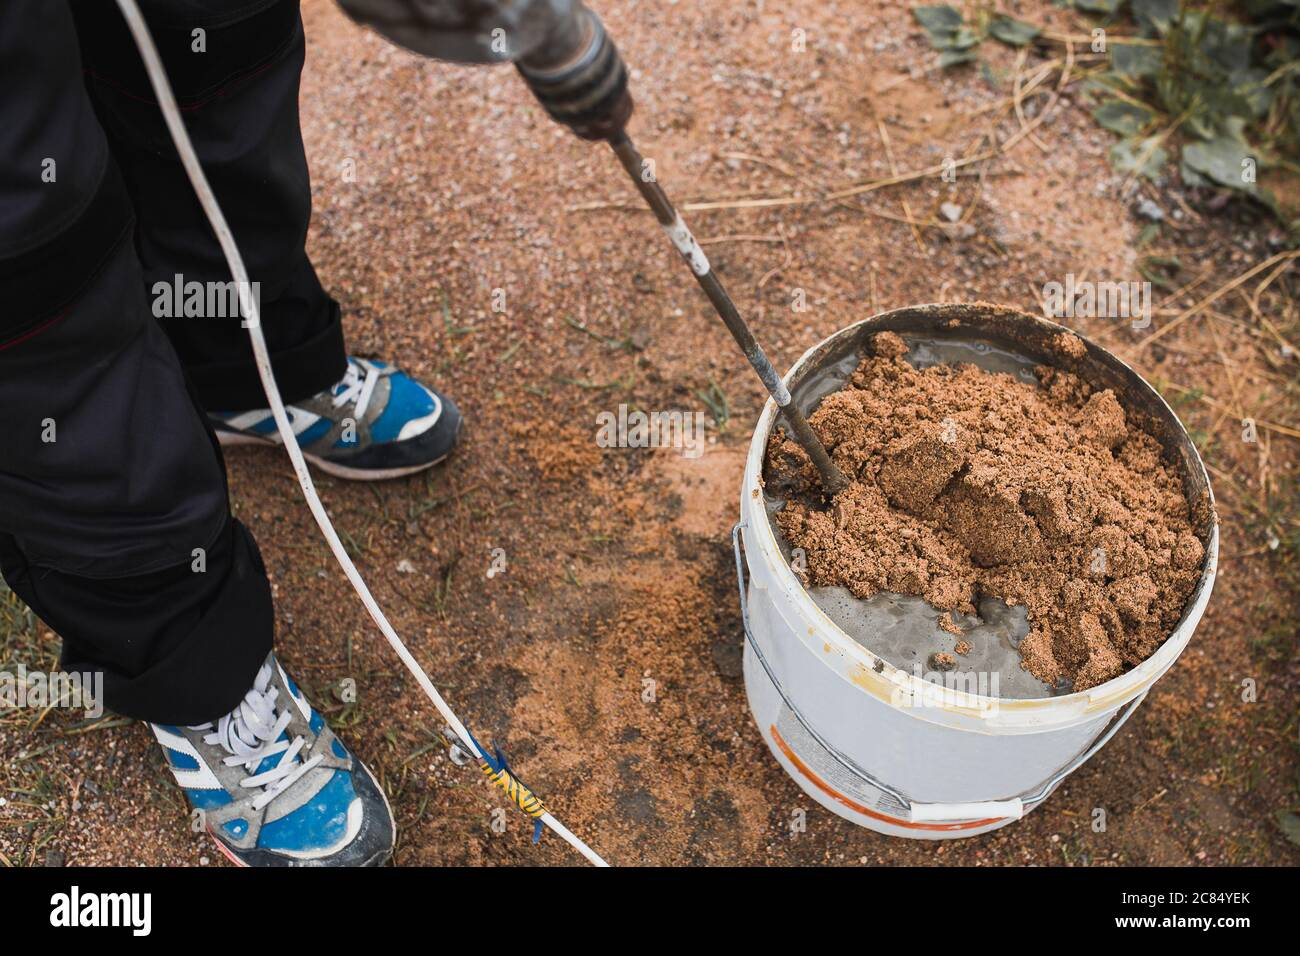 Preparation of cement glue mortar in a bucket of cement and sand using a mixer nozzle on a drill - the work of a professional bricklayer Stock Photo